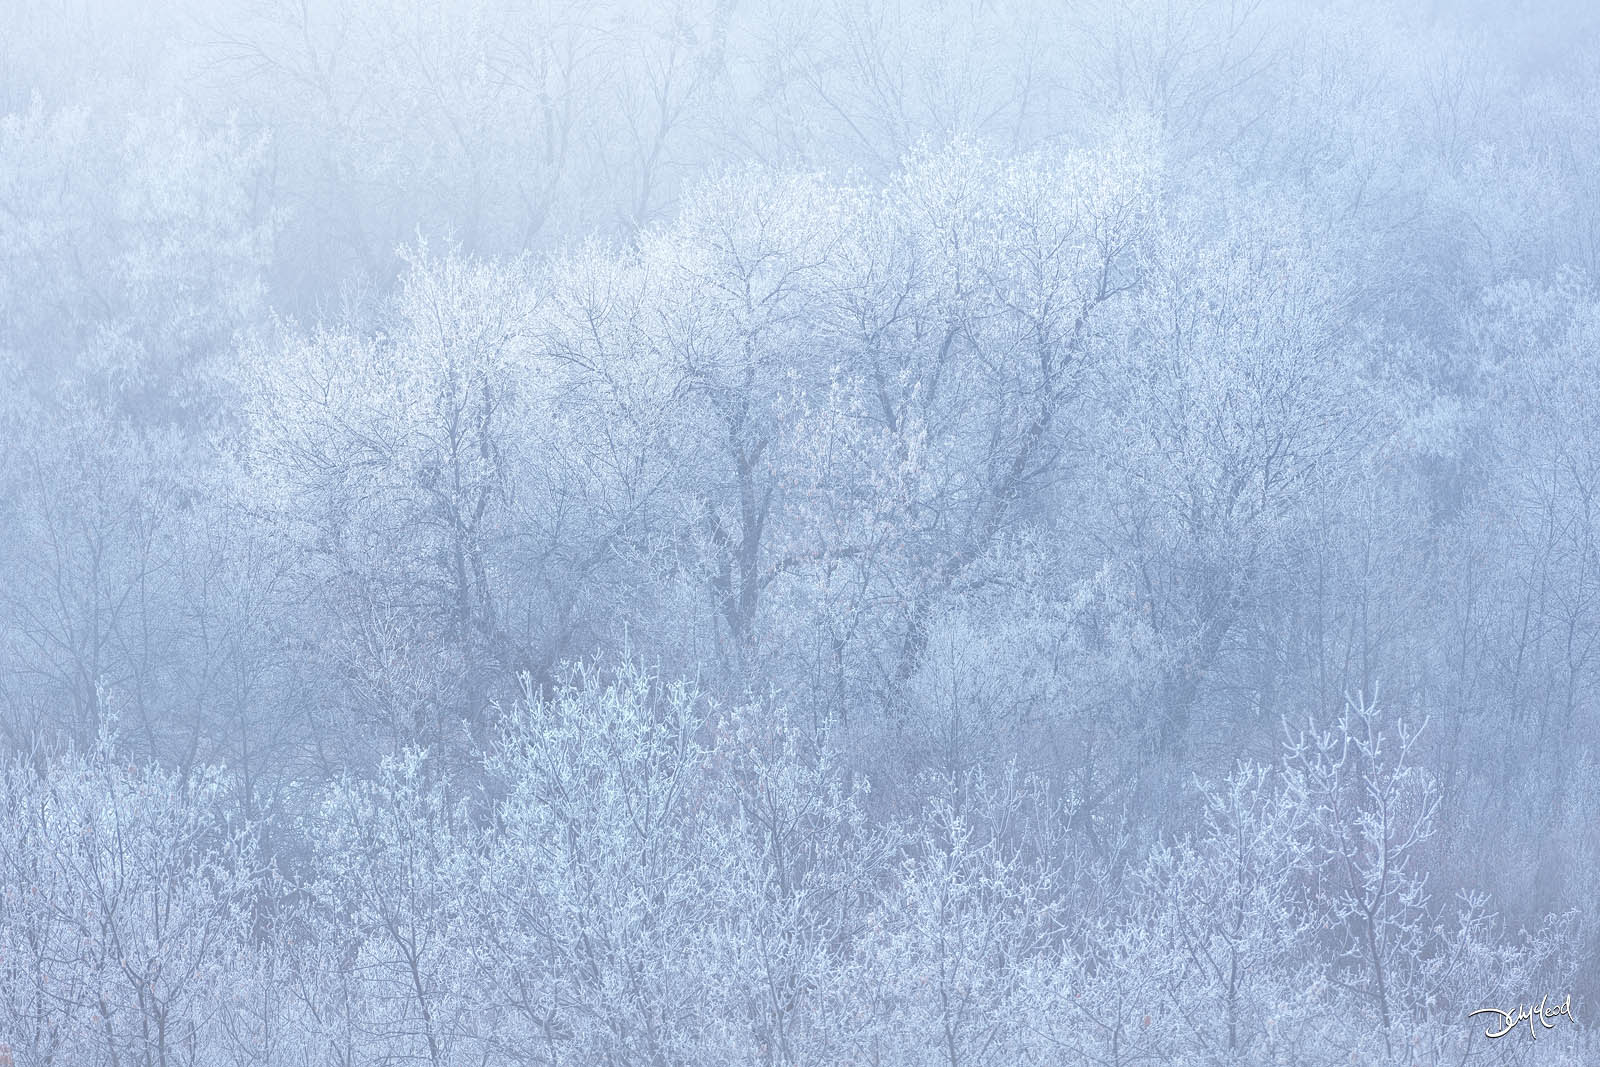 Hoar frost and fog on bushes and trees with a light blue color throughout.